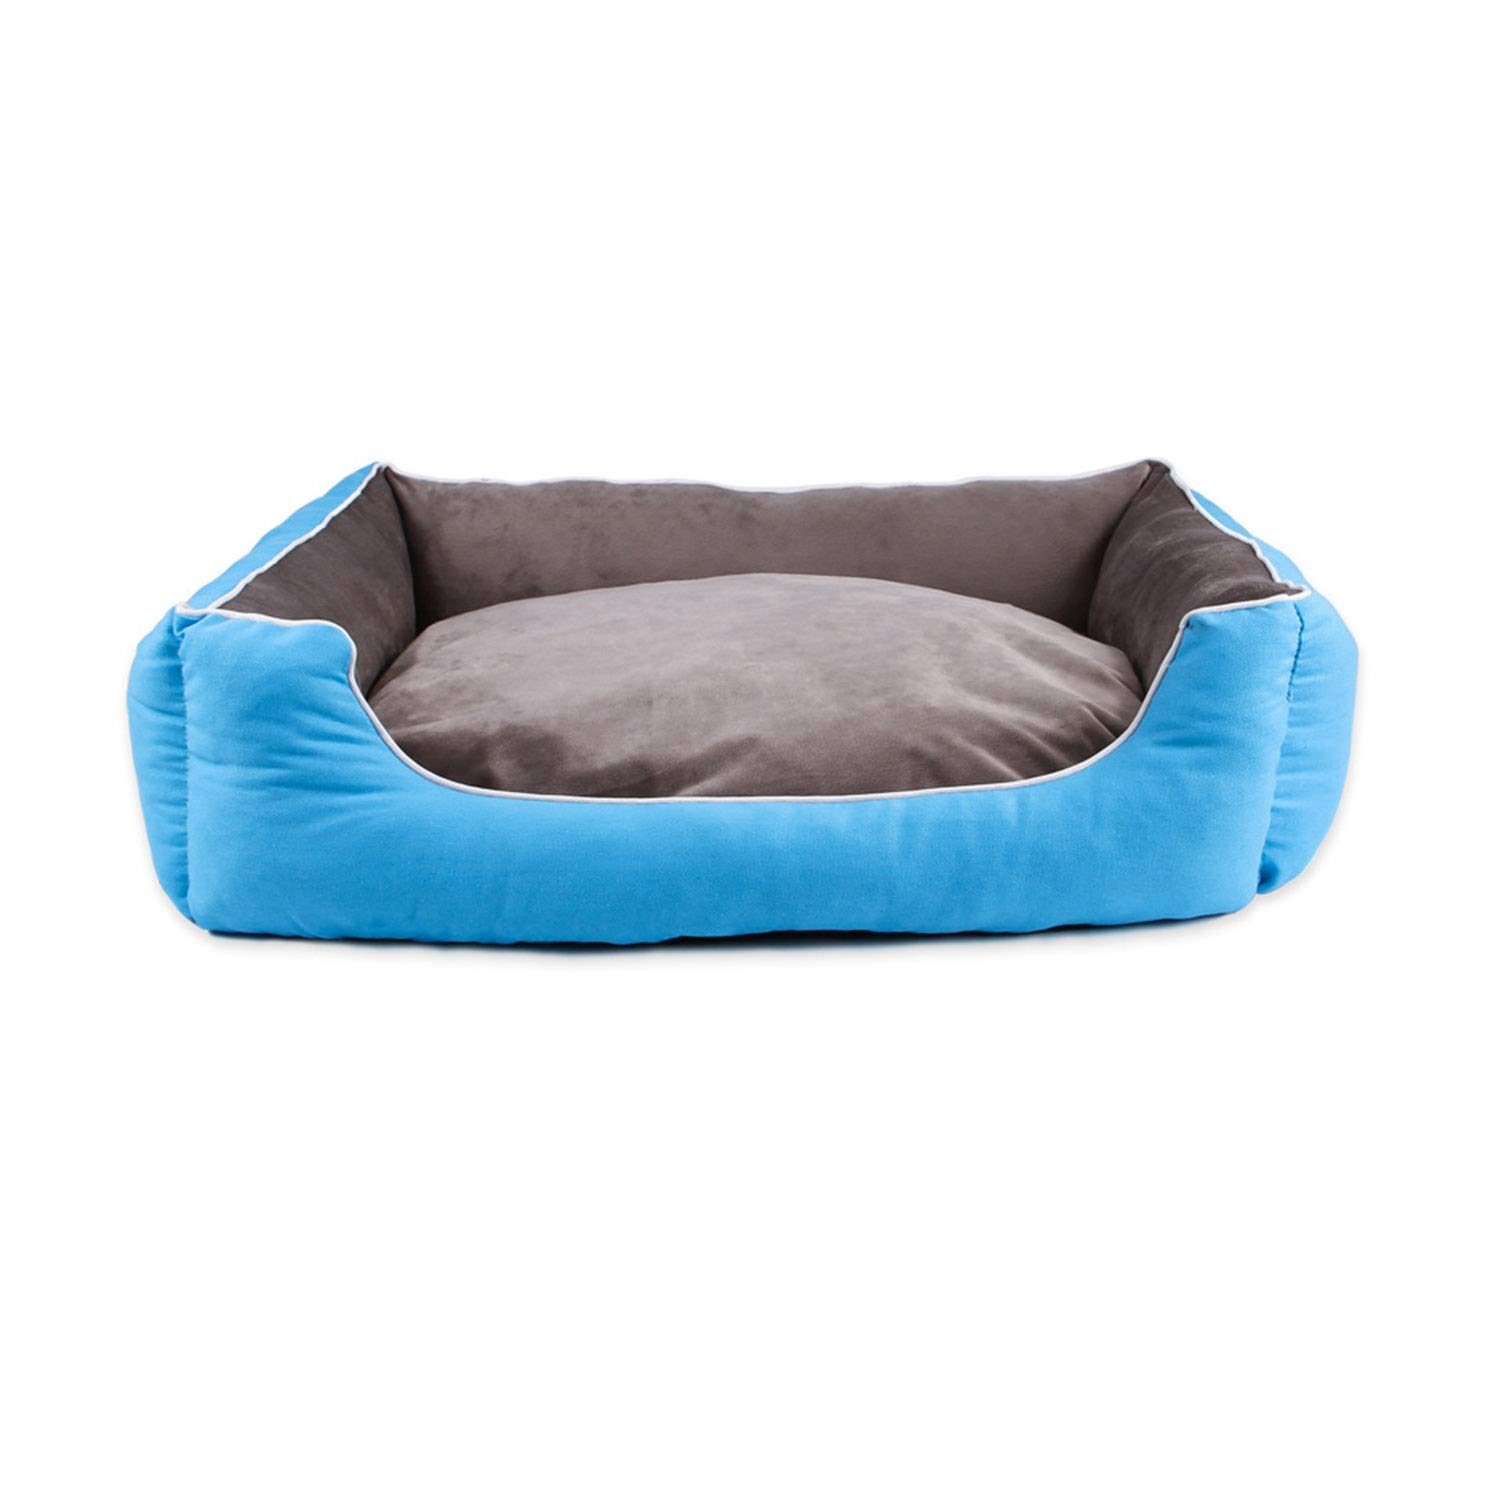 bluee M bluee M Sile Pet Bed, Indoor Washable Pet Soft Cushion Moisture Proof Oxford Cloth Pet Sofa Comfortable Breathable SL-021 (color   bluee, Size   M)